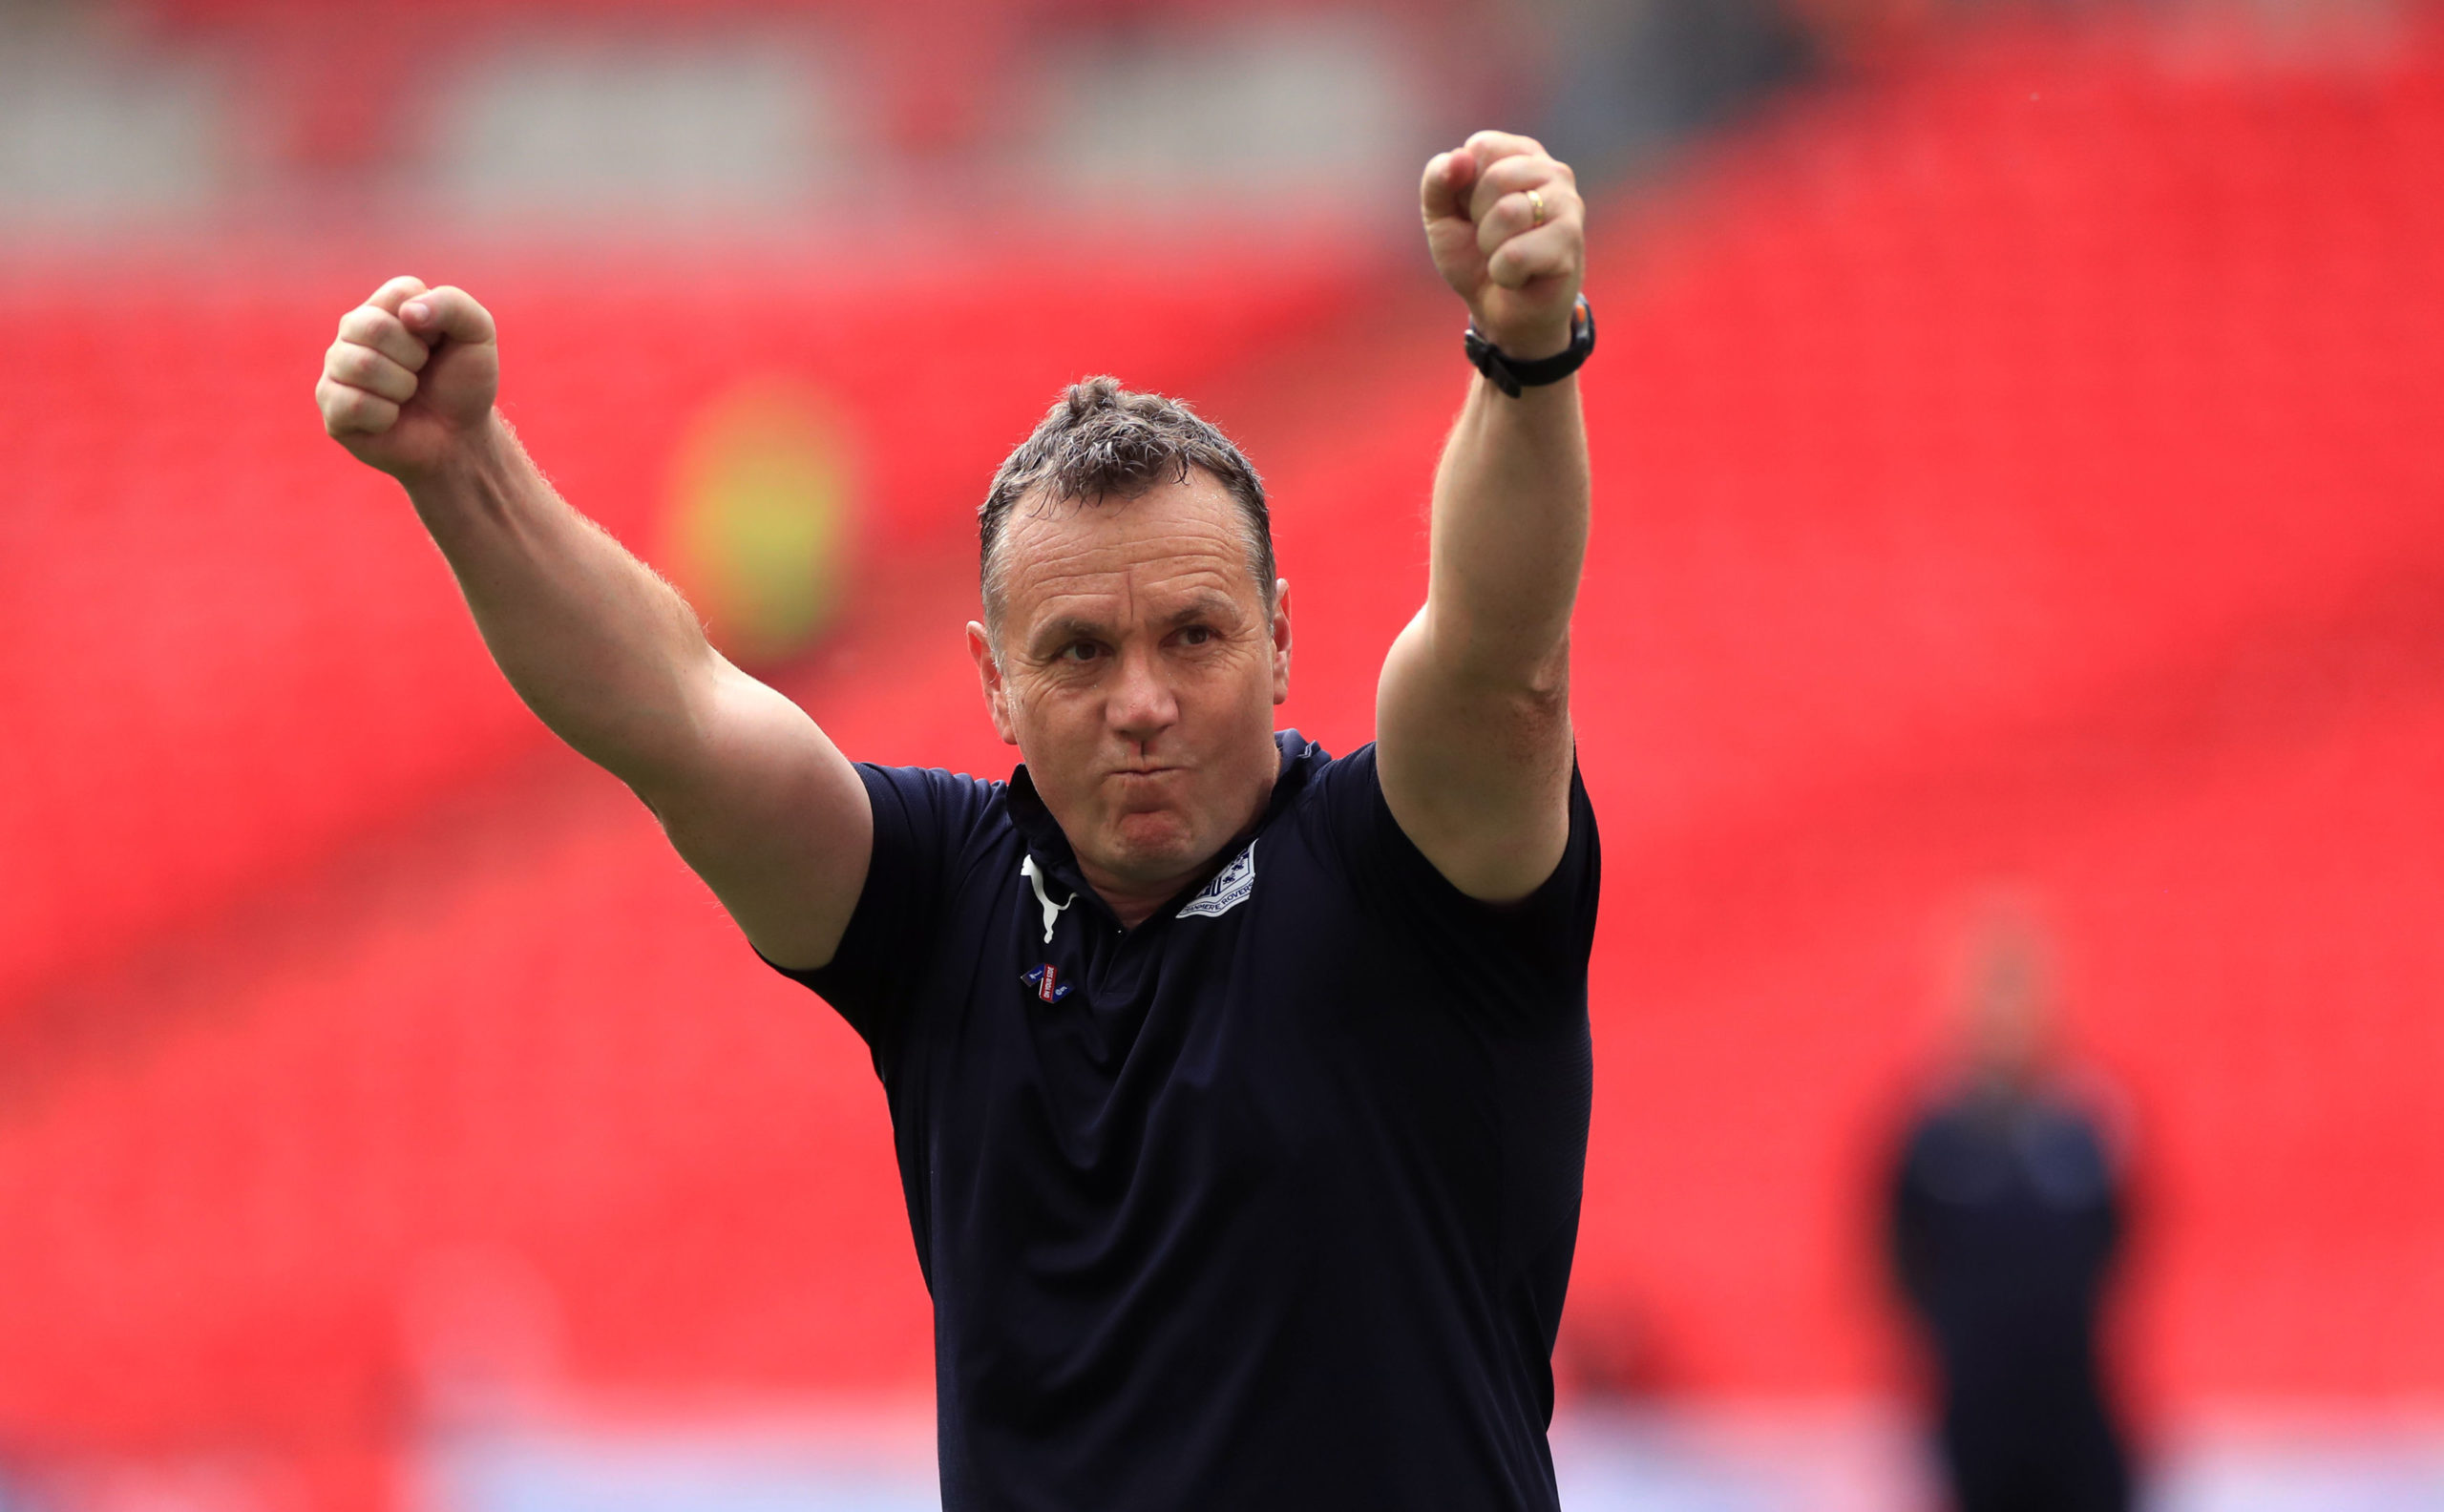 Micky Mellon has been appointed as Dundee United's new head coach.